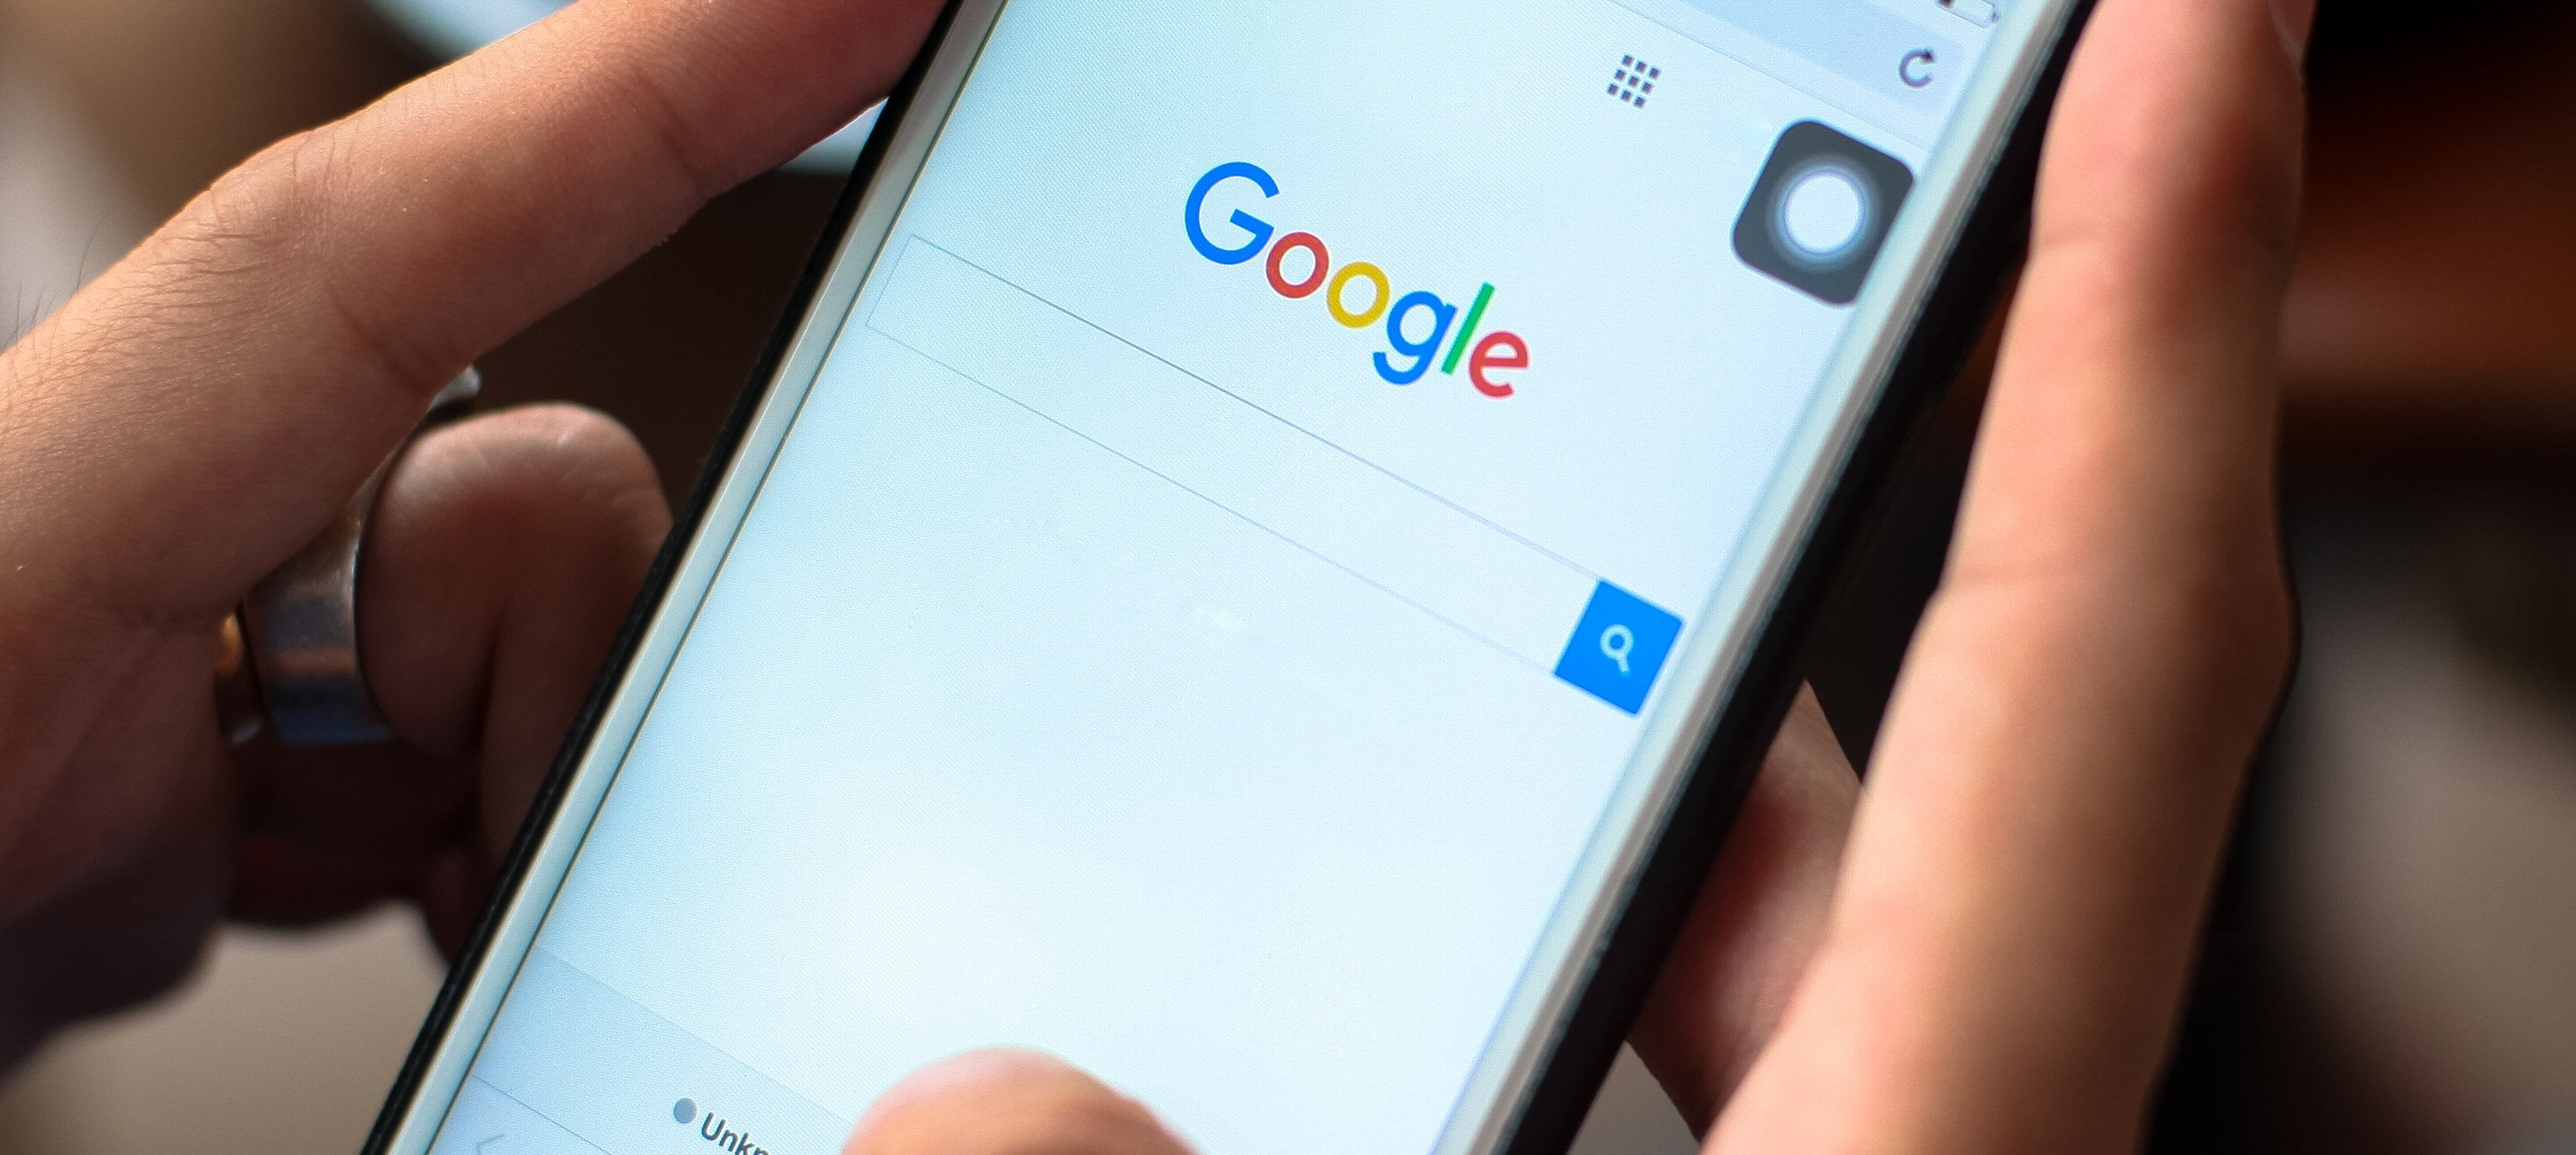 VPN Is Among The Top Google Searches Of 2018 In Uganda